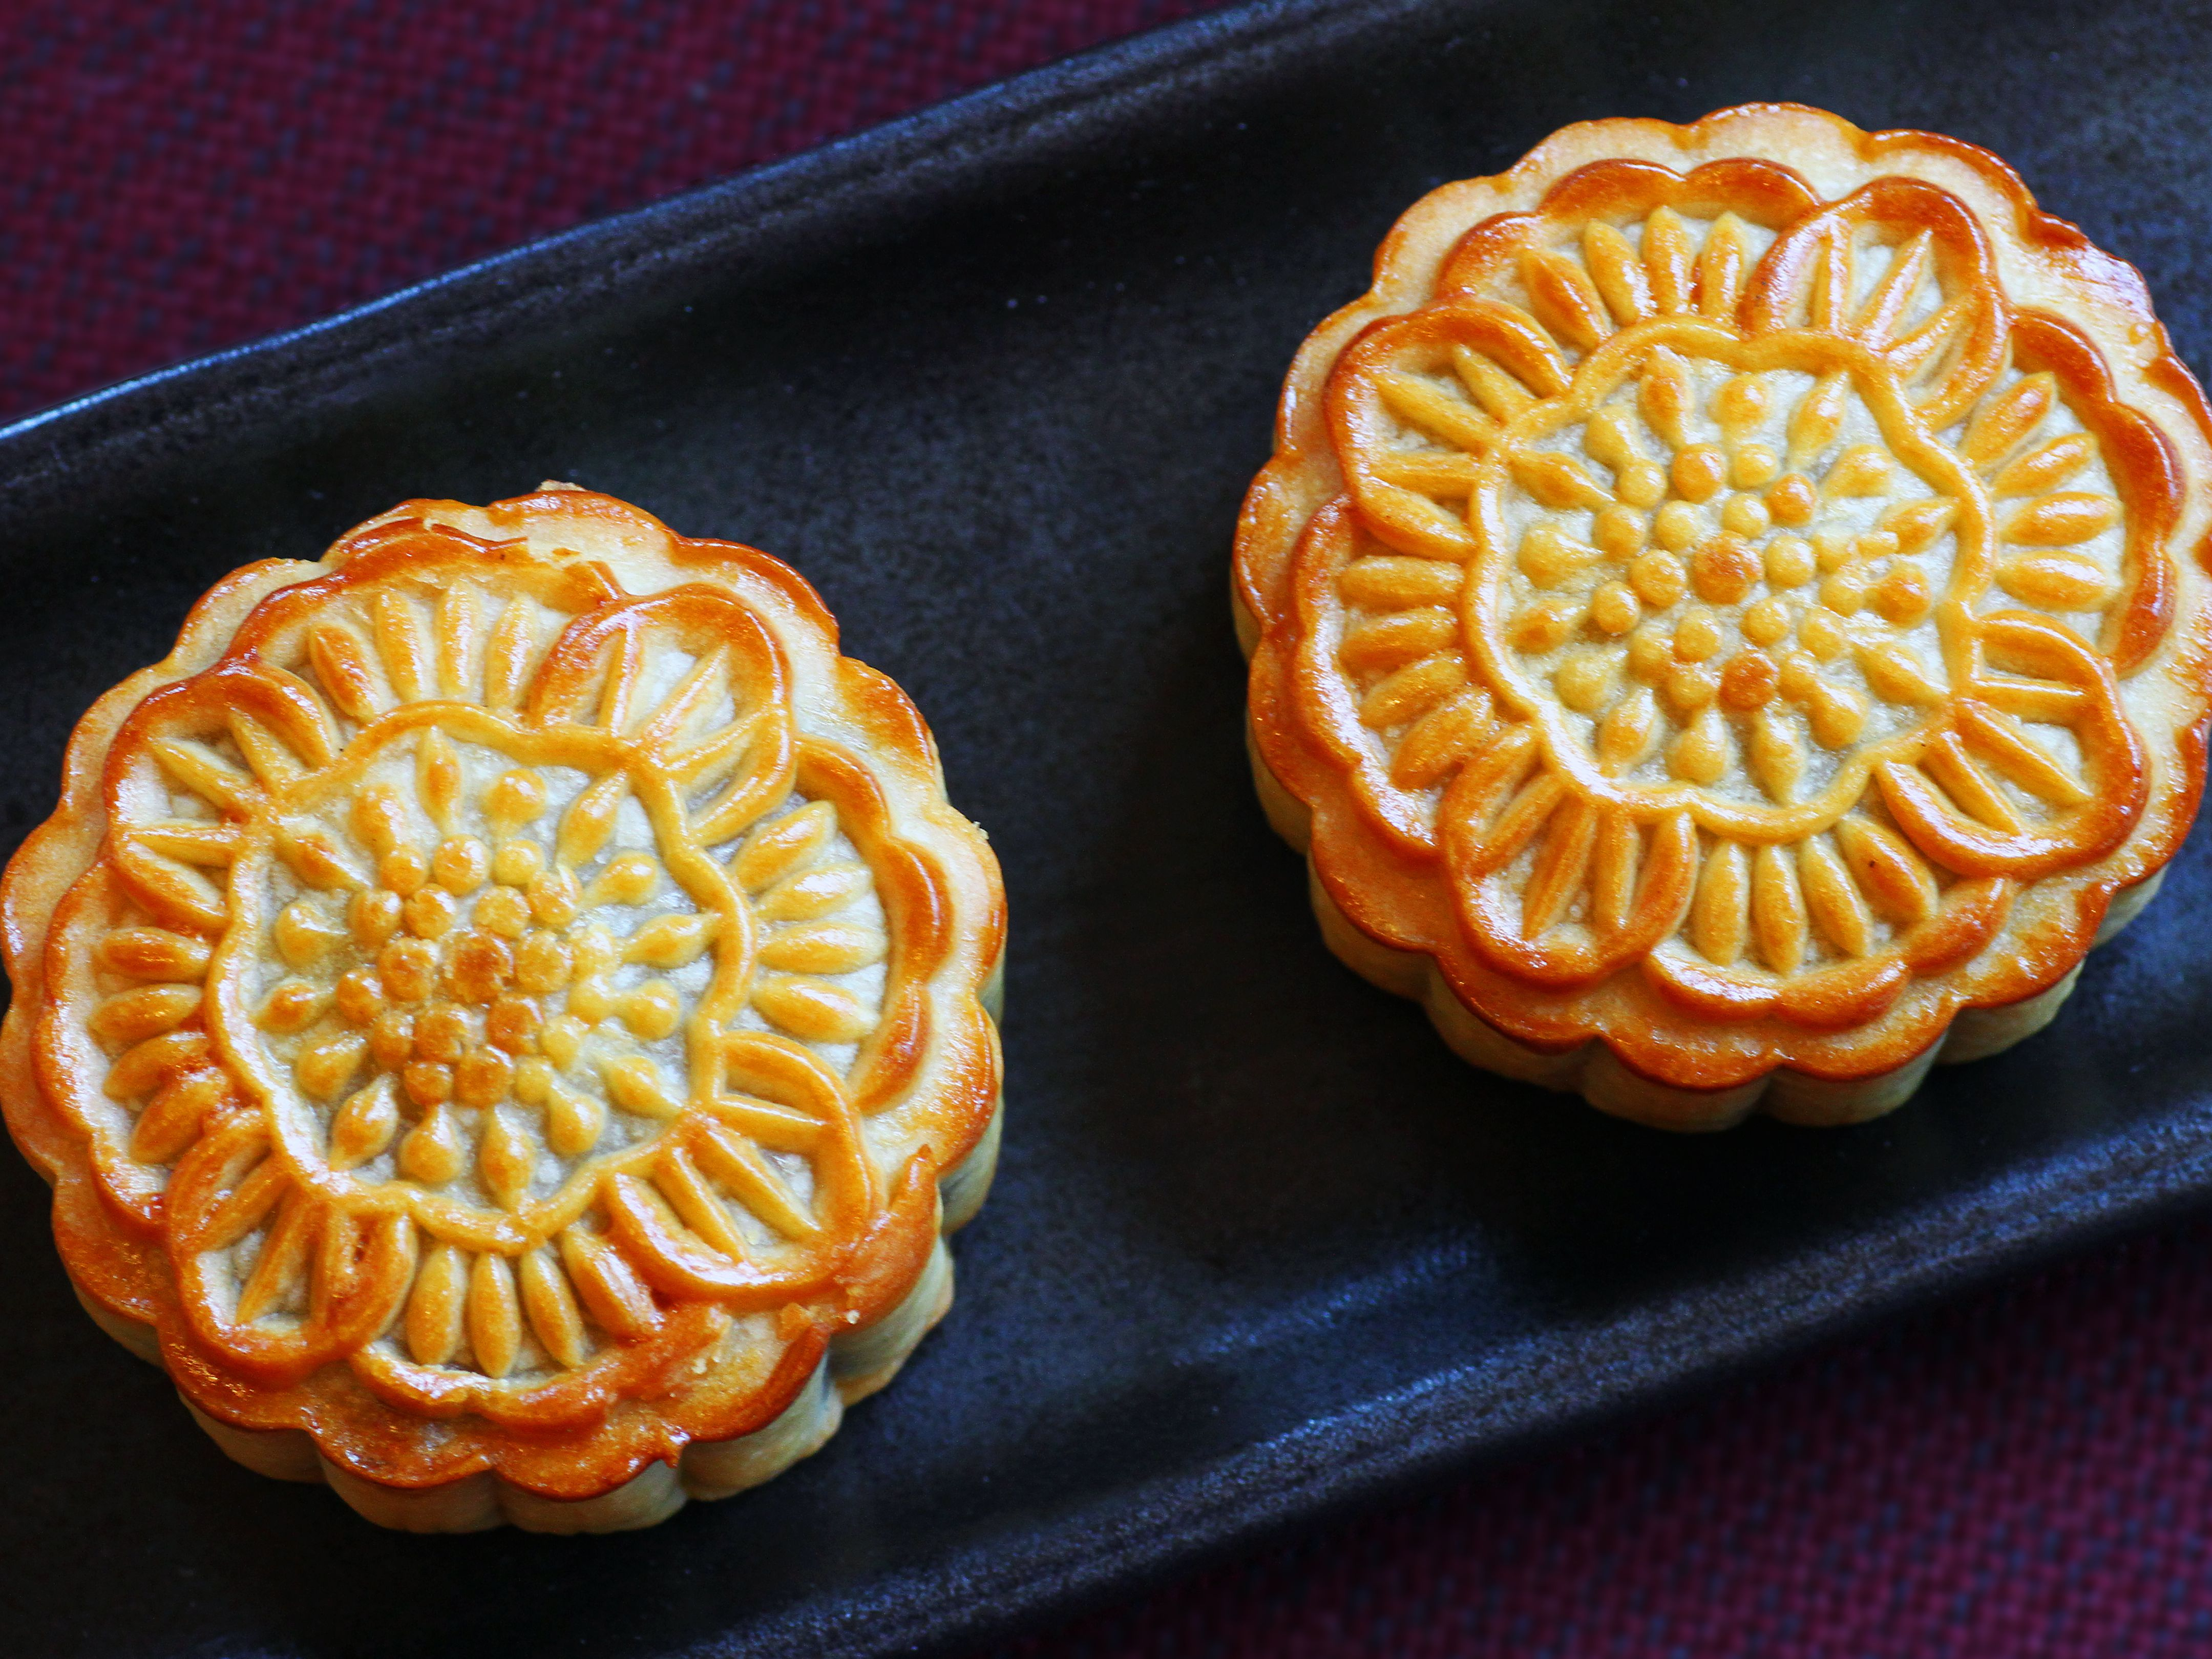 Celebrating the Mid-Autumn Festival in China